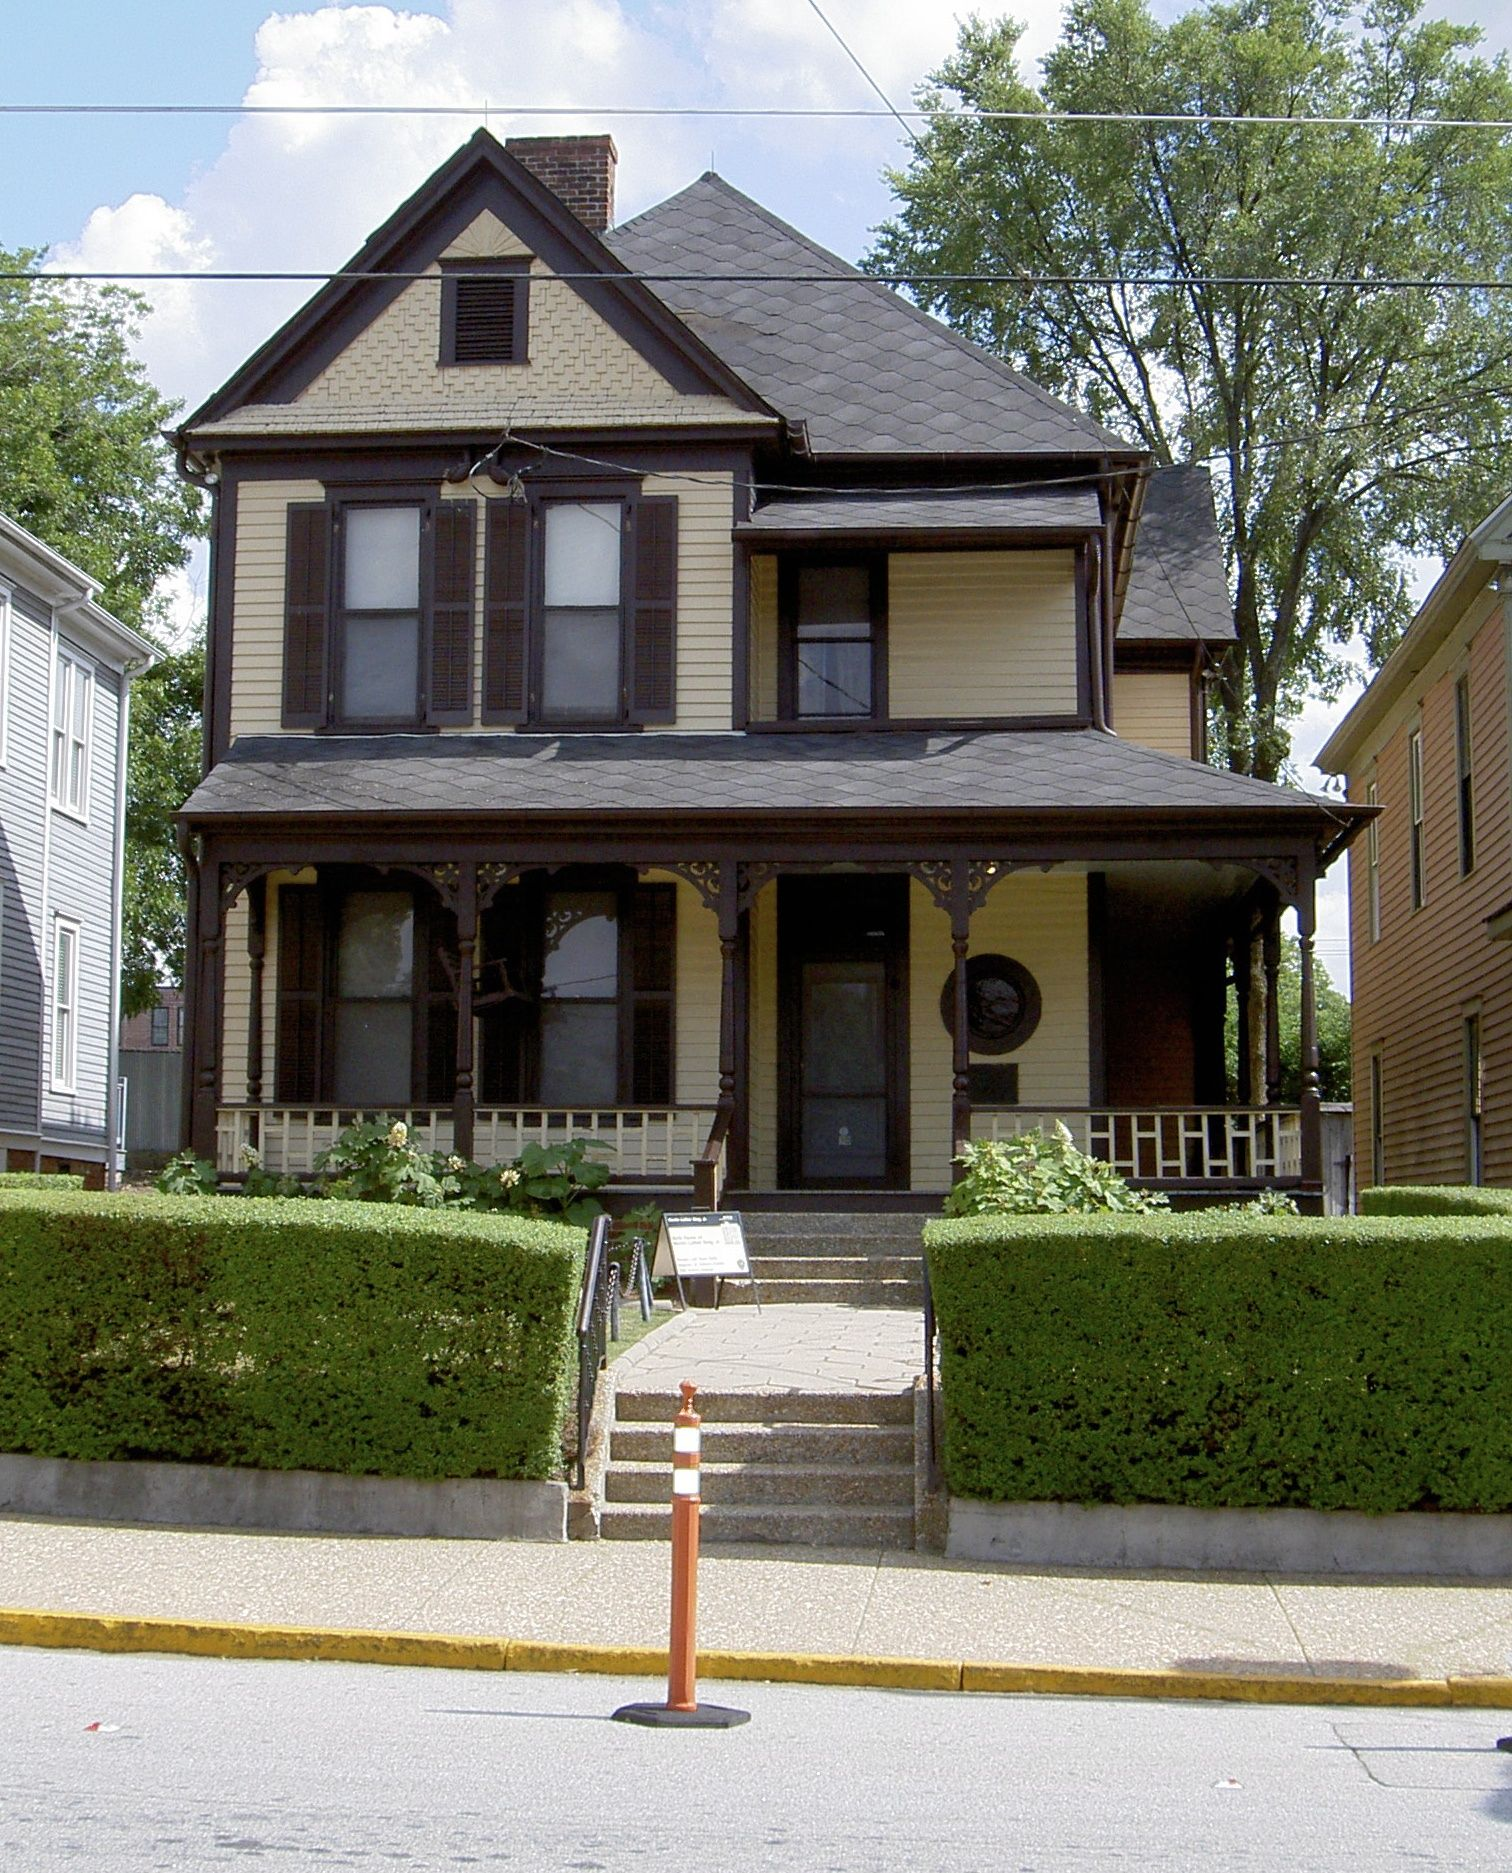 Sights Birth Home Of Martin Luther King Jr The Modest Queen Anne